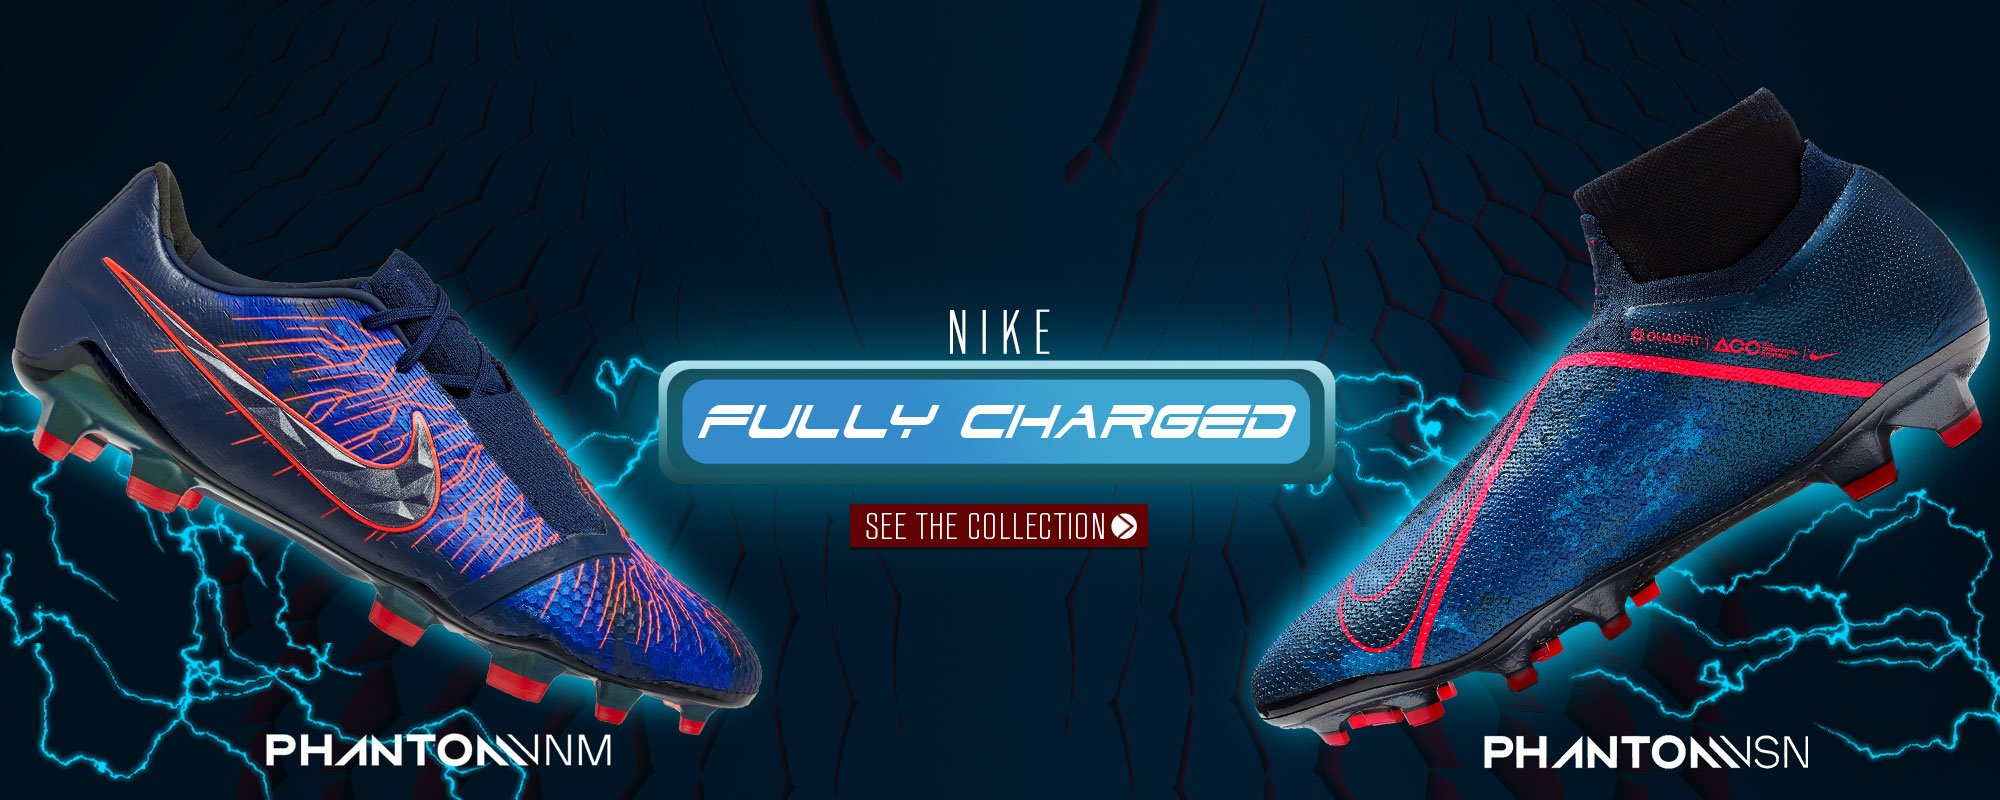 5479df75ab14 Shop the Nike Fully Charged Pack below.